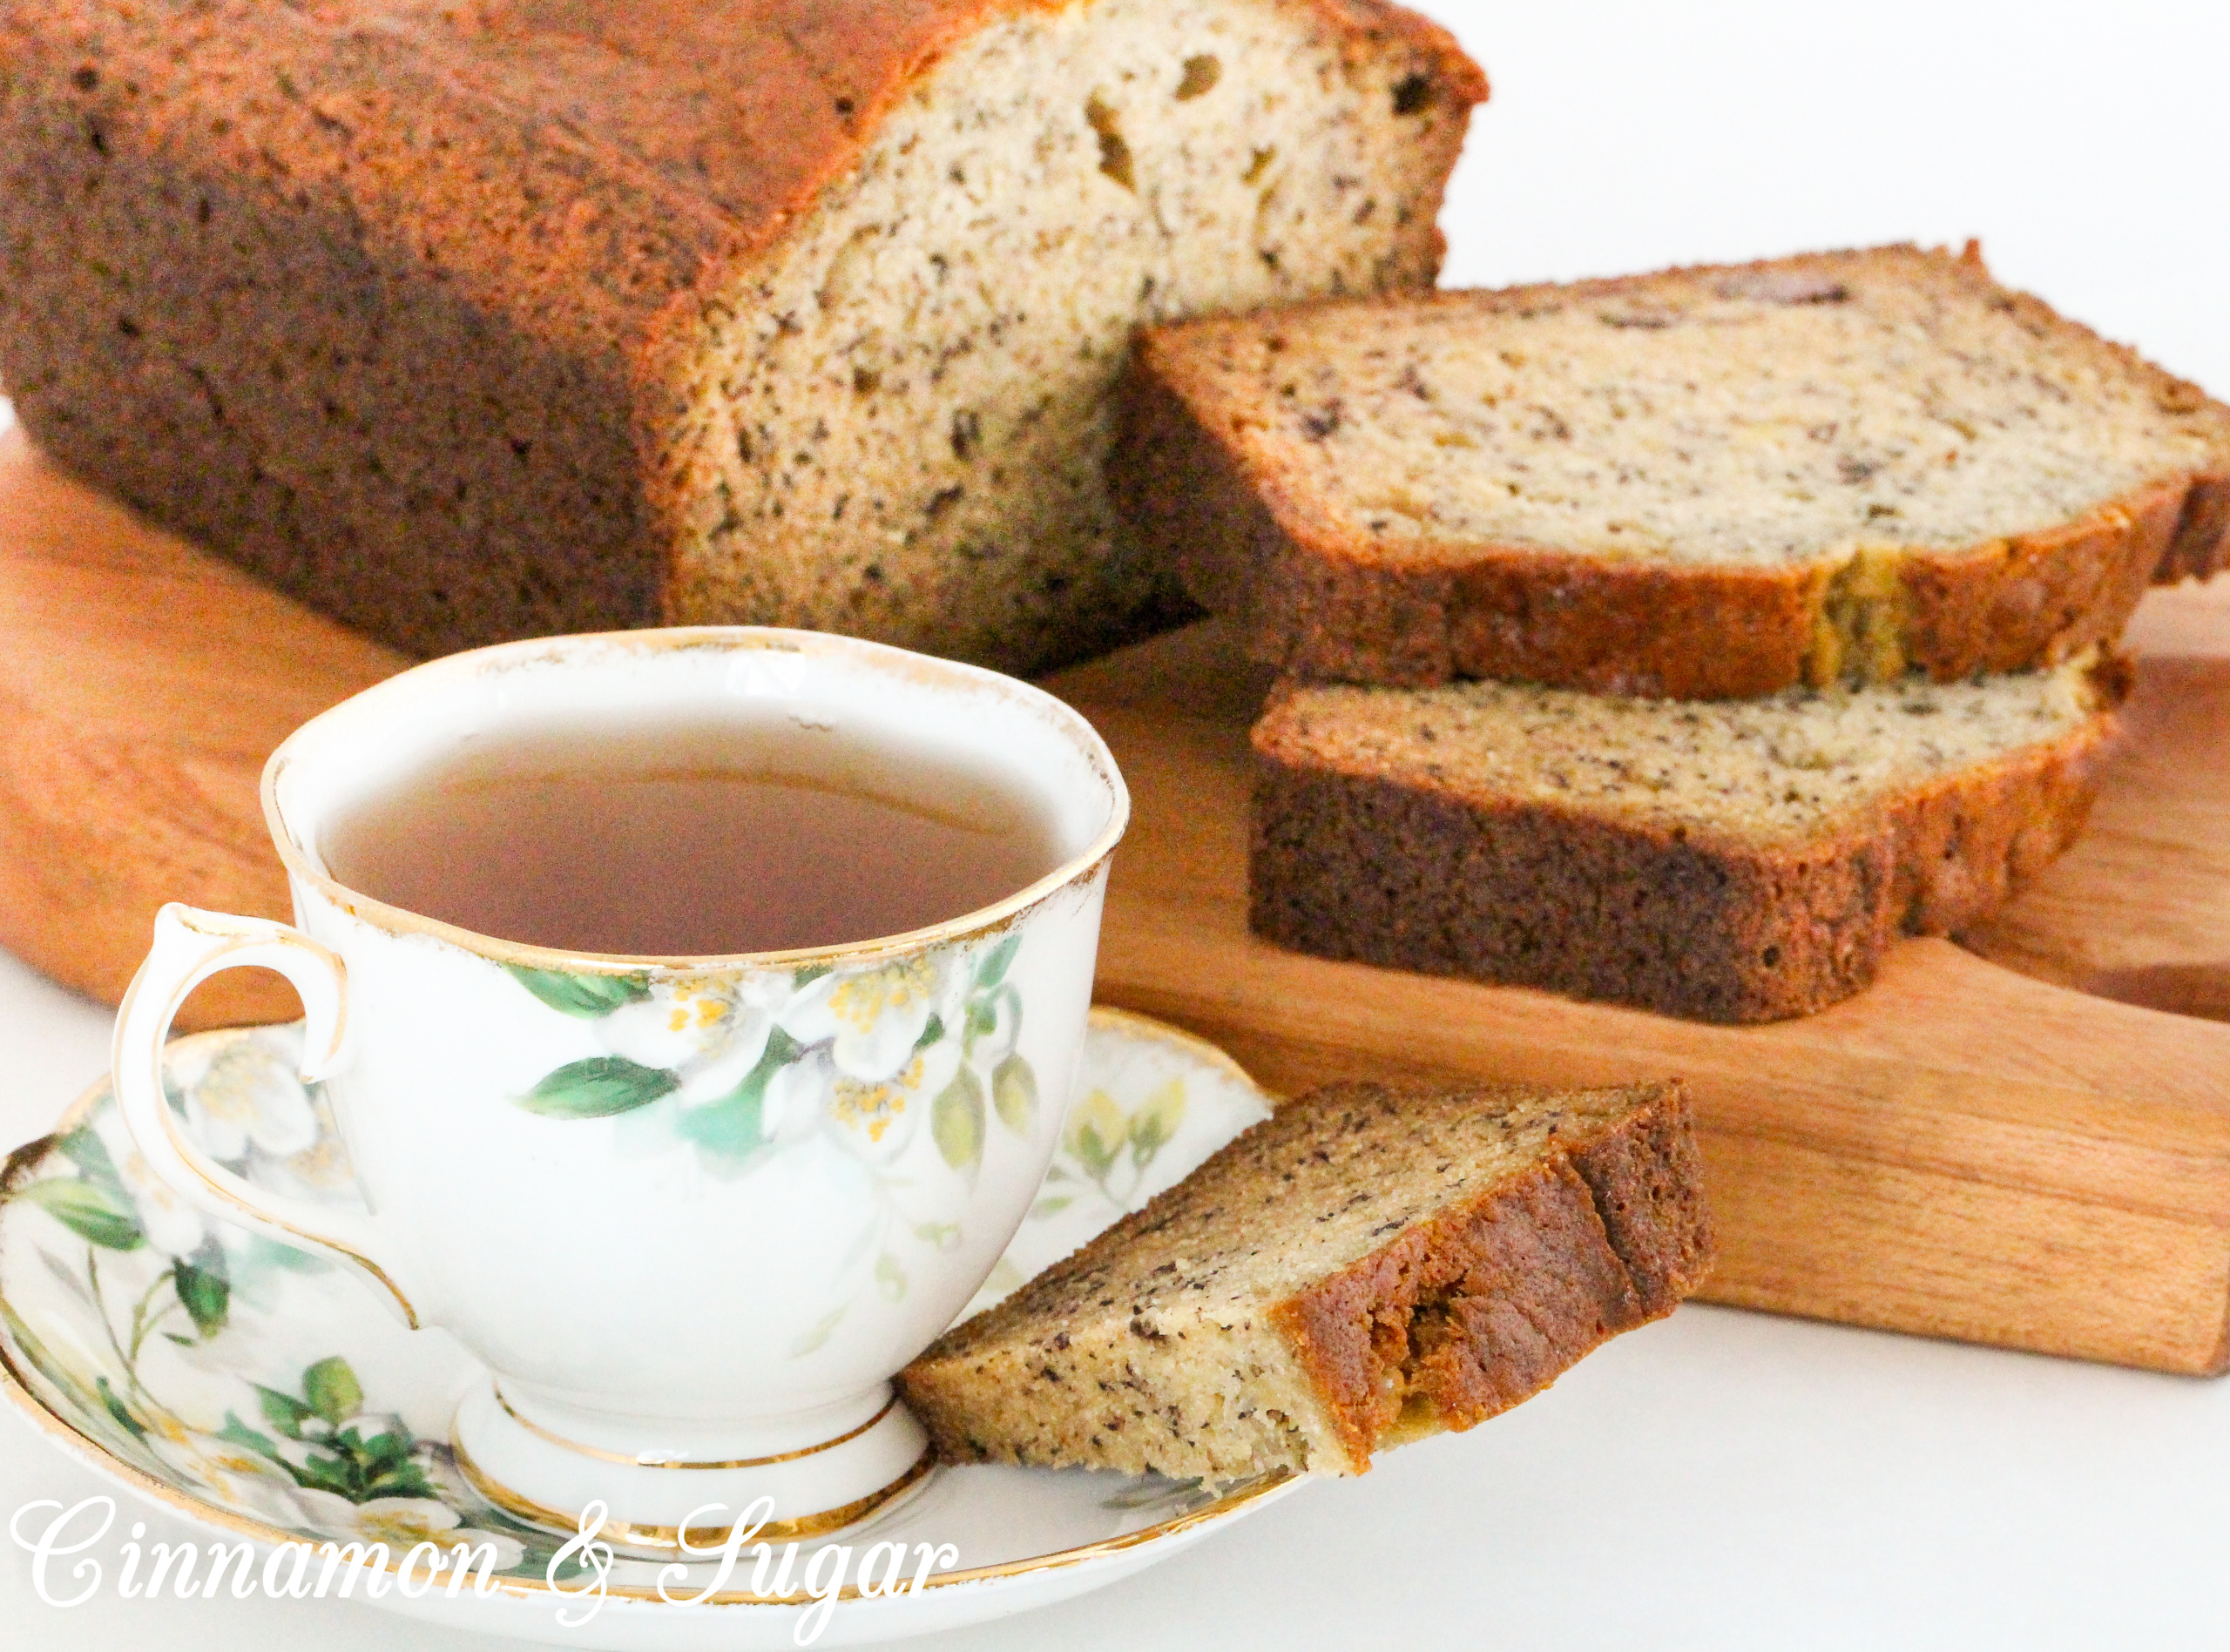 Hilda's No-Fail Banana Bread is quick and easy to mix up since a fork and bowls are the only equipment required. It doesn't take long for a sweet aroma to fill the air as the bread bakes and sliced warm with a pat of butter, this treat will hit the spot! Recipe shared with permission granted by Mary Lee Ashford, author of THE QUICHE OF DEATH.